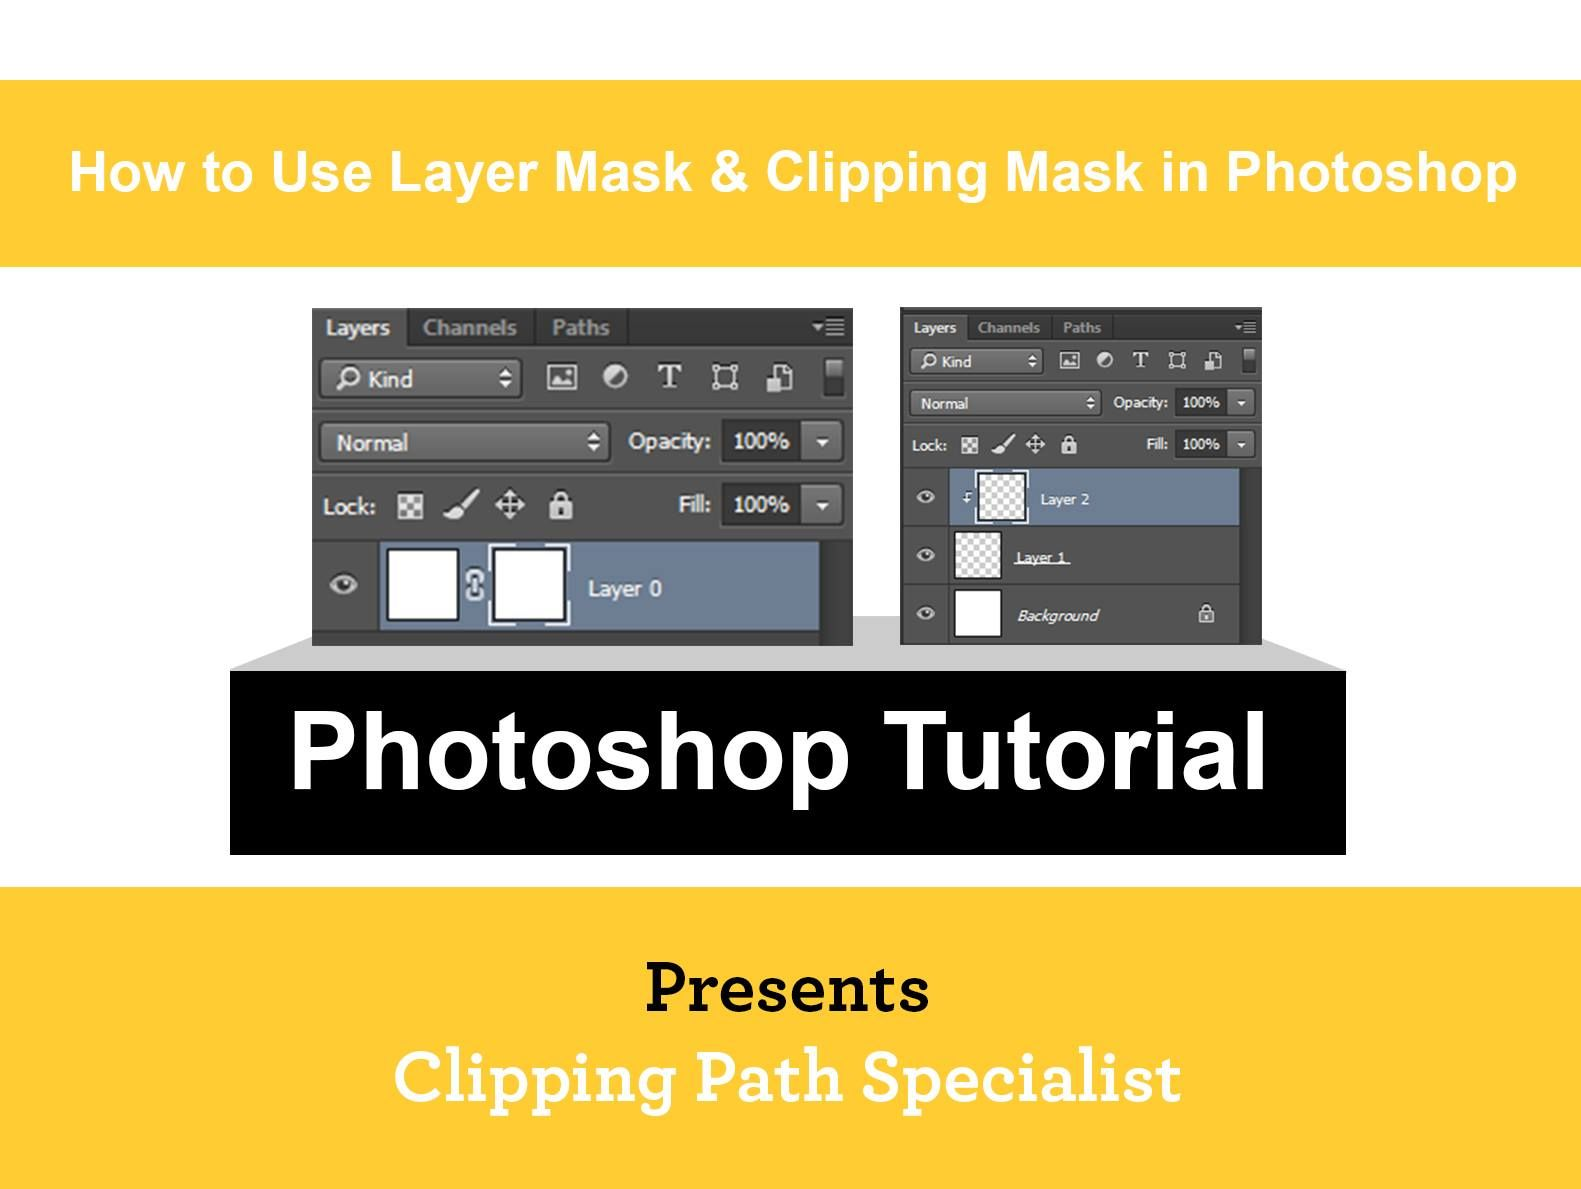 How to Use layer mask & Clipping Mask in Full